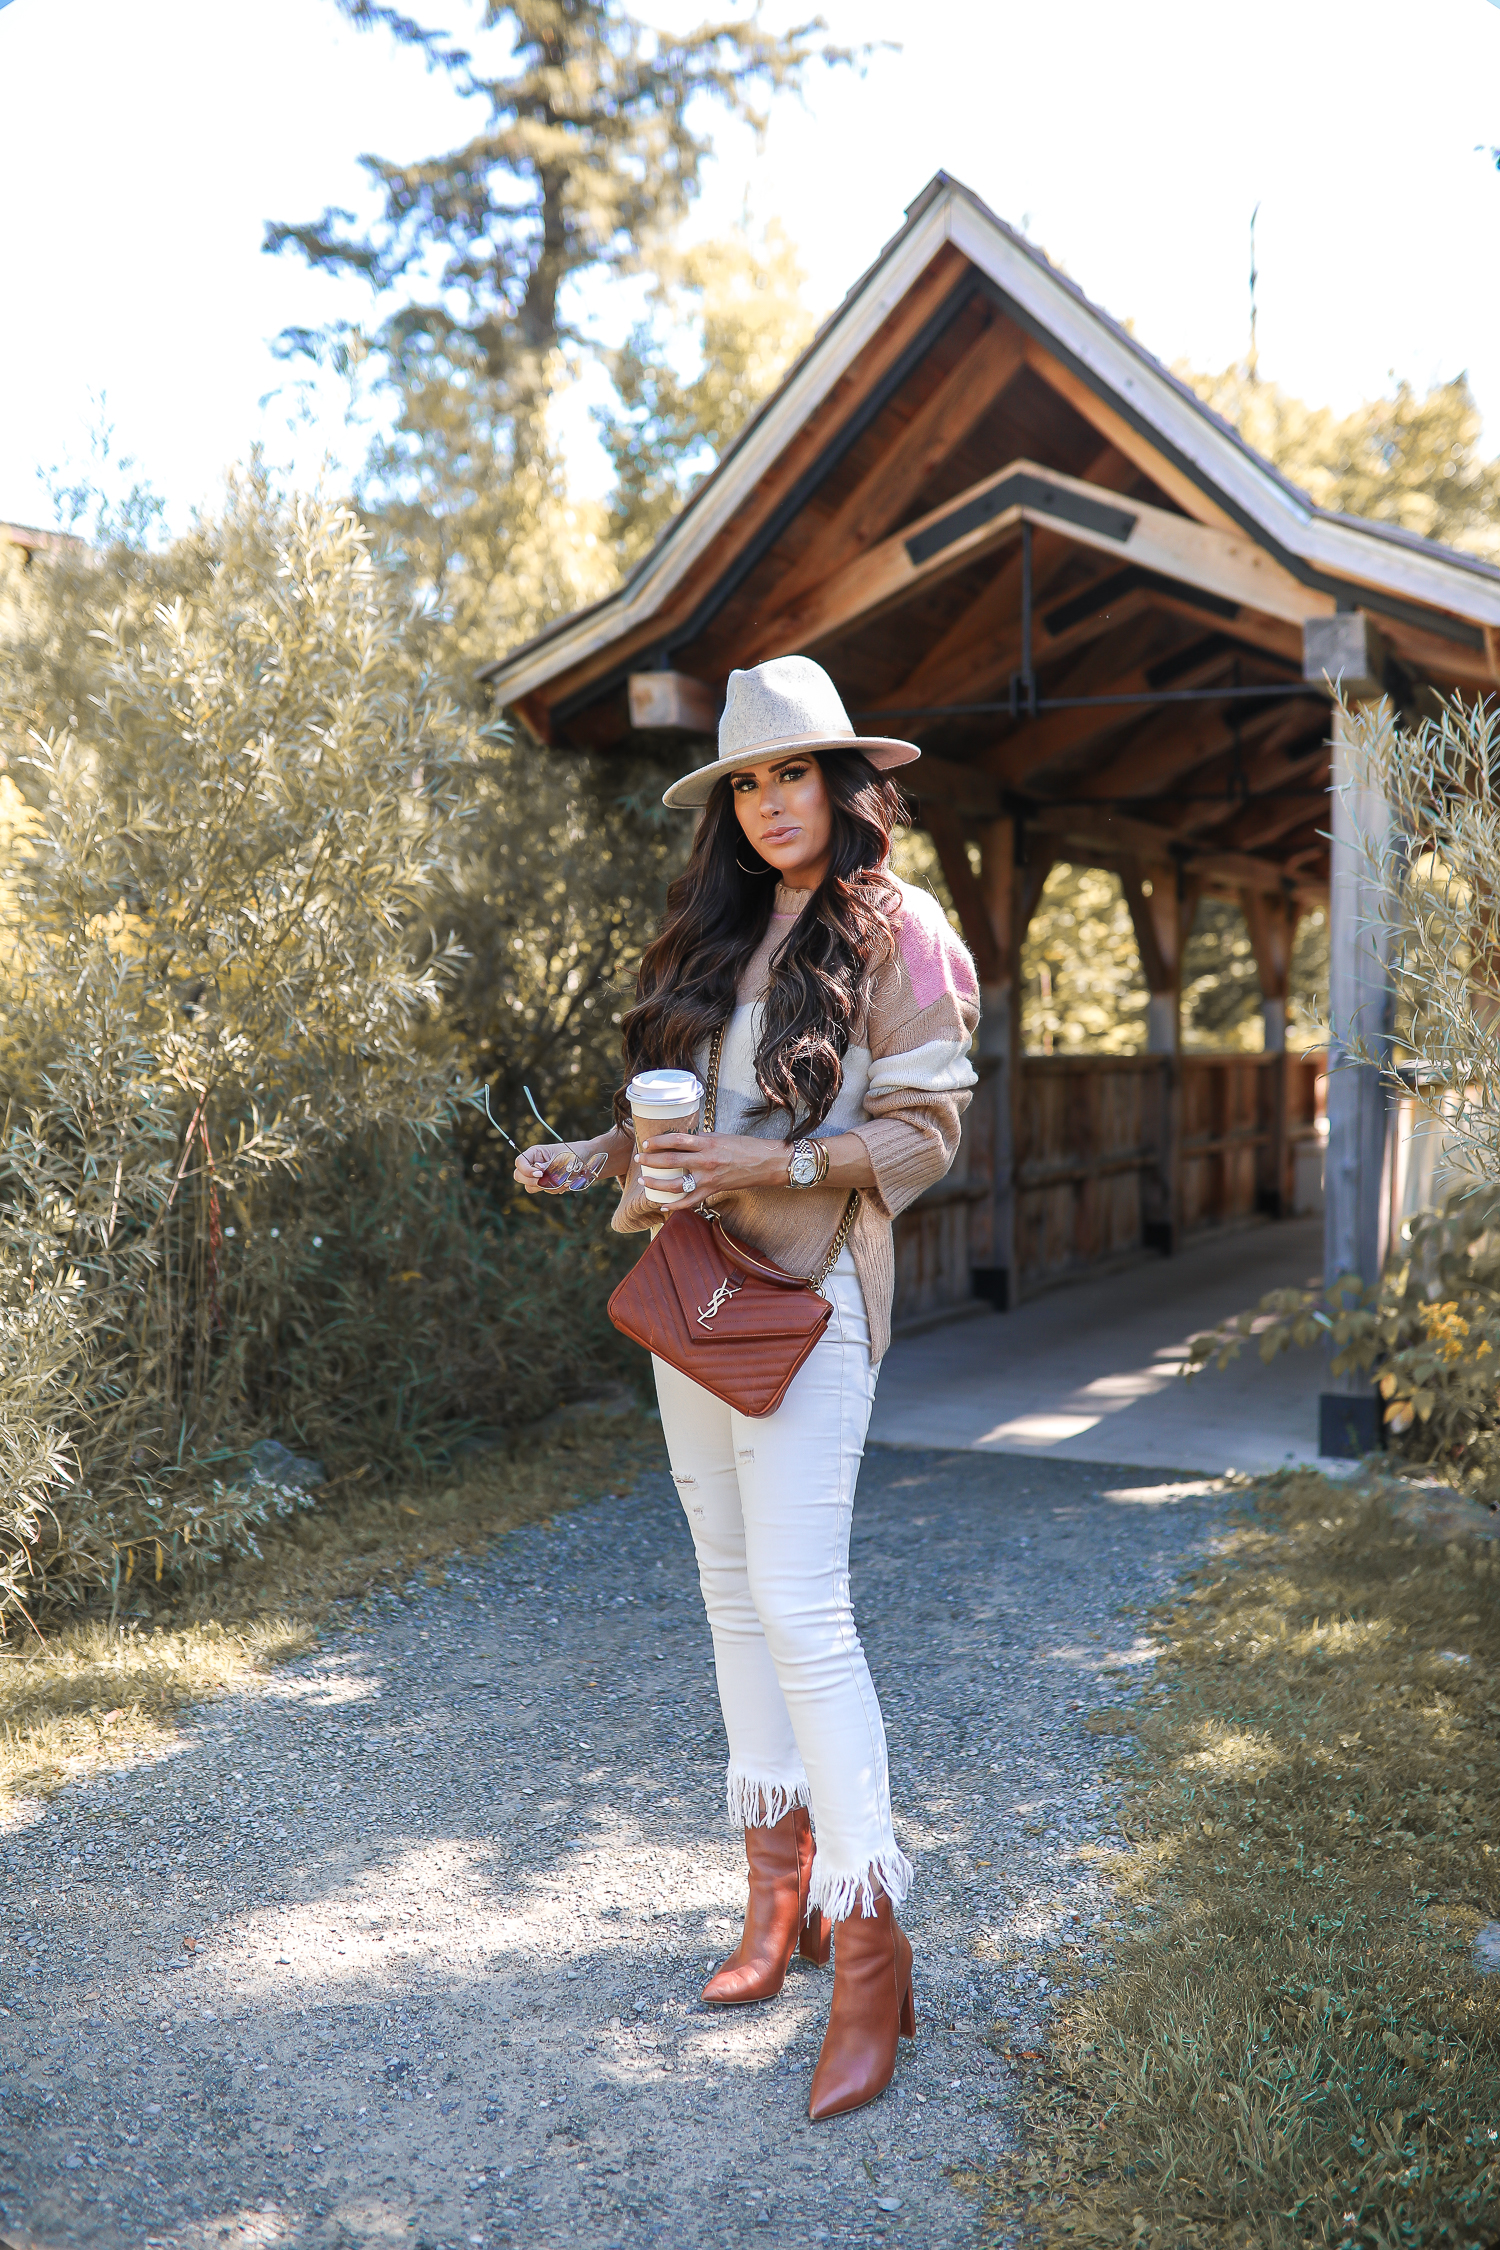 fall fashion pinterest 2019, stowe vermont, YSL collage tan bag, Lack of color mack hat, Topshop colorblock sweater tan and pink, Emily Gemma-13